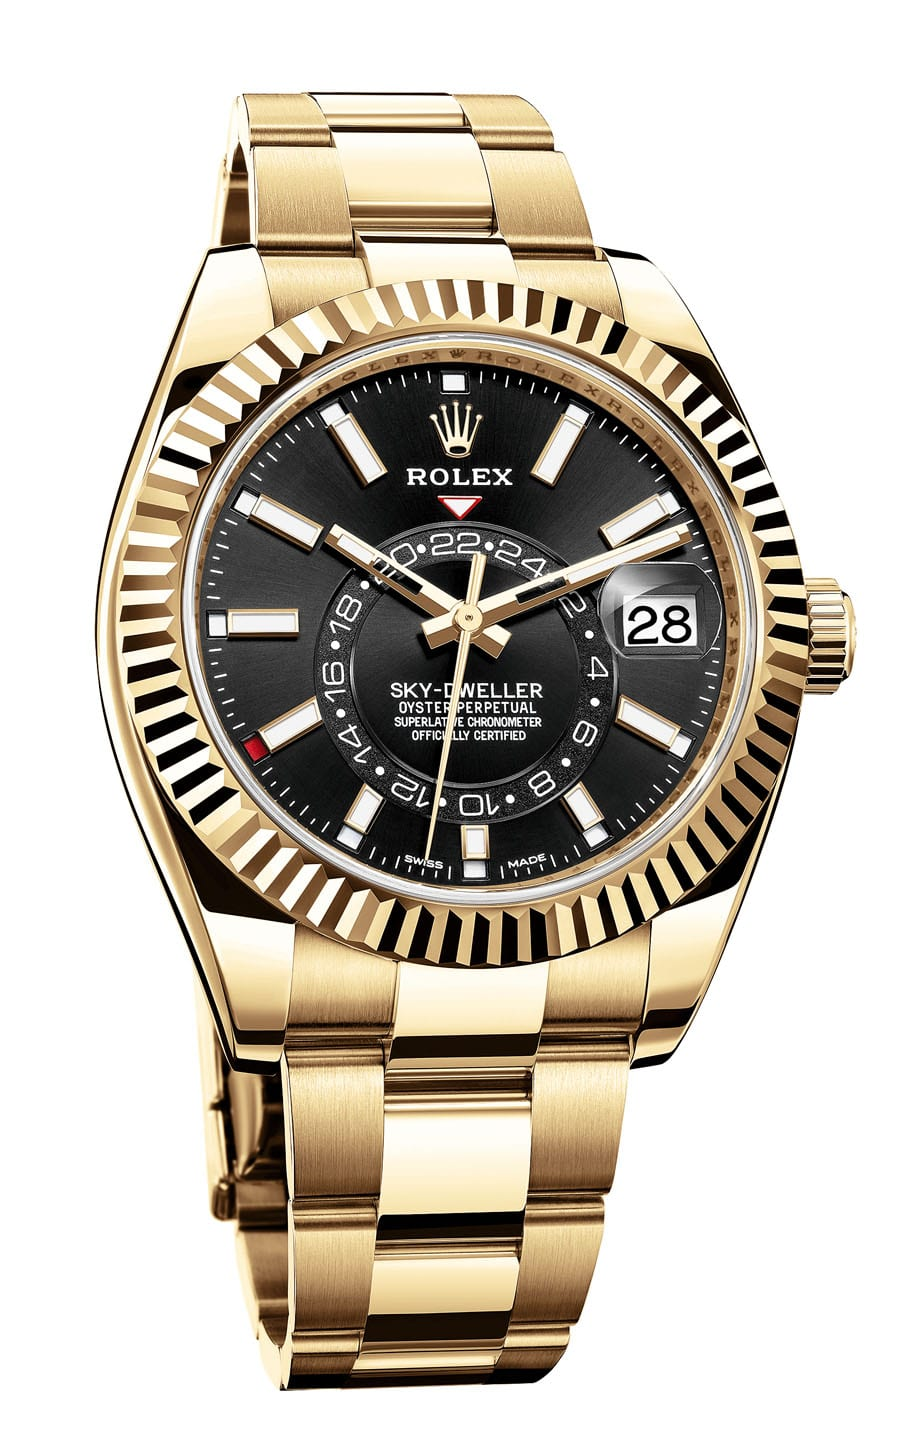 Rolex: Oyster Perpetual Sky-Dweller in Gelbgold